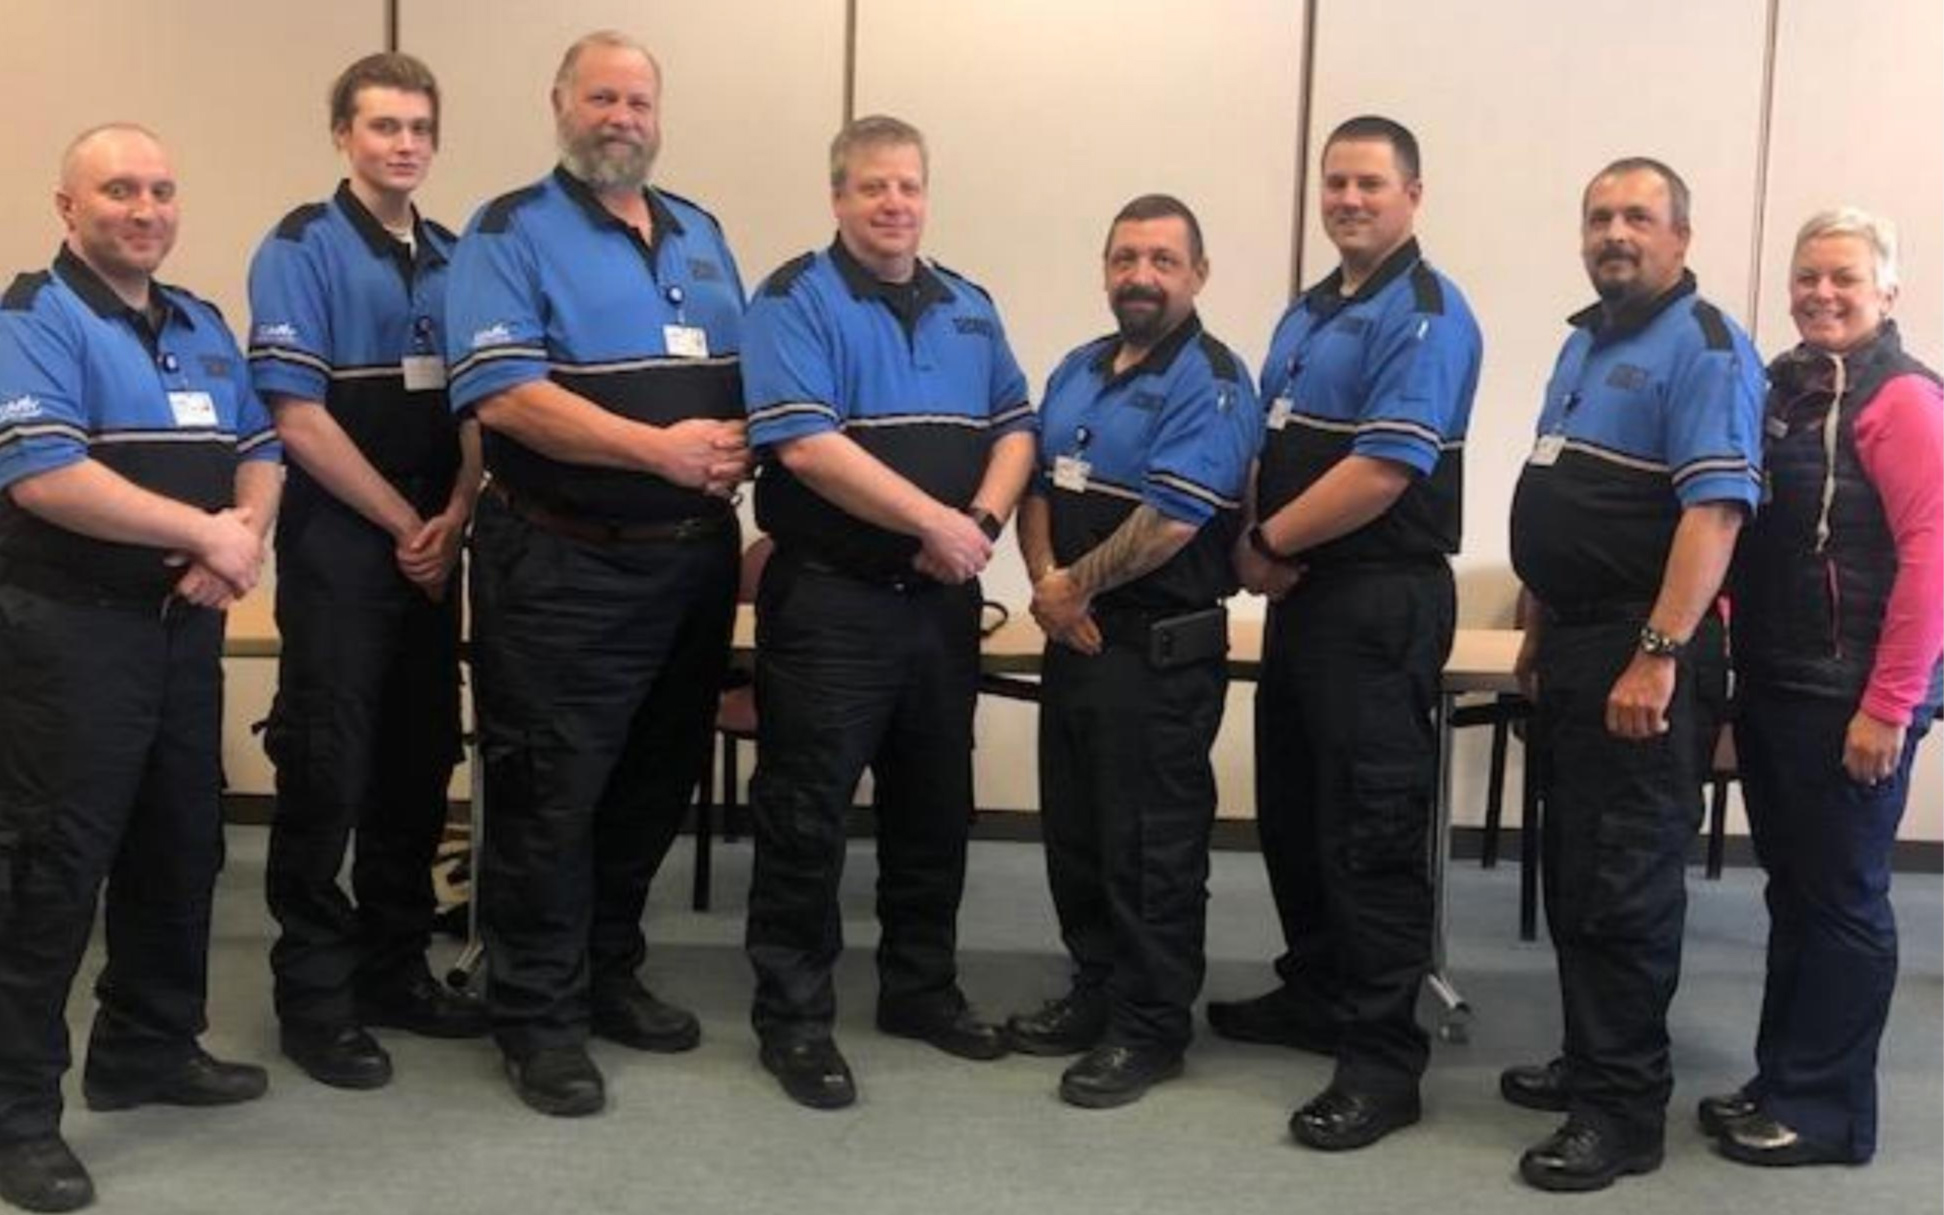 Cary Medical Center transitions to in-house security force to enhance safety